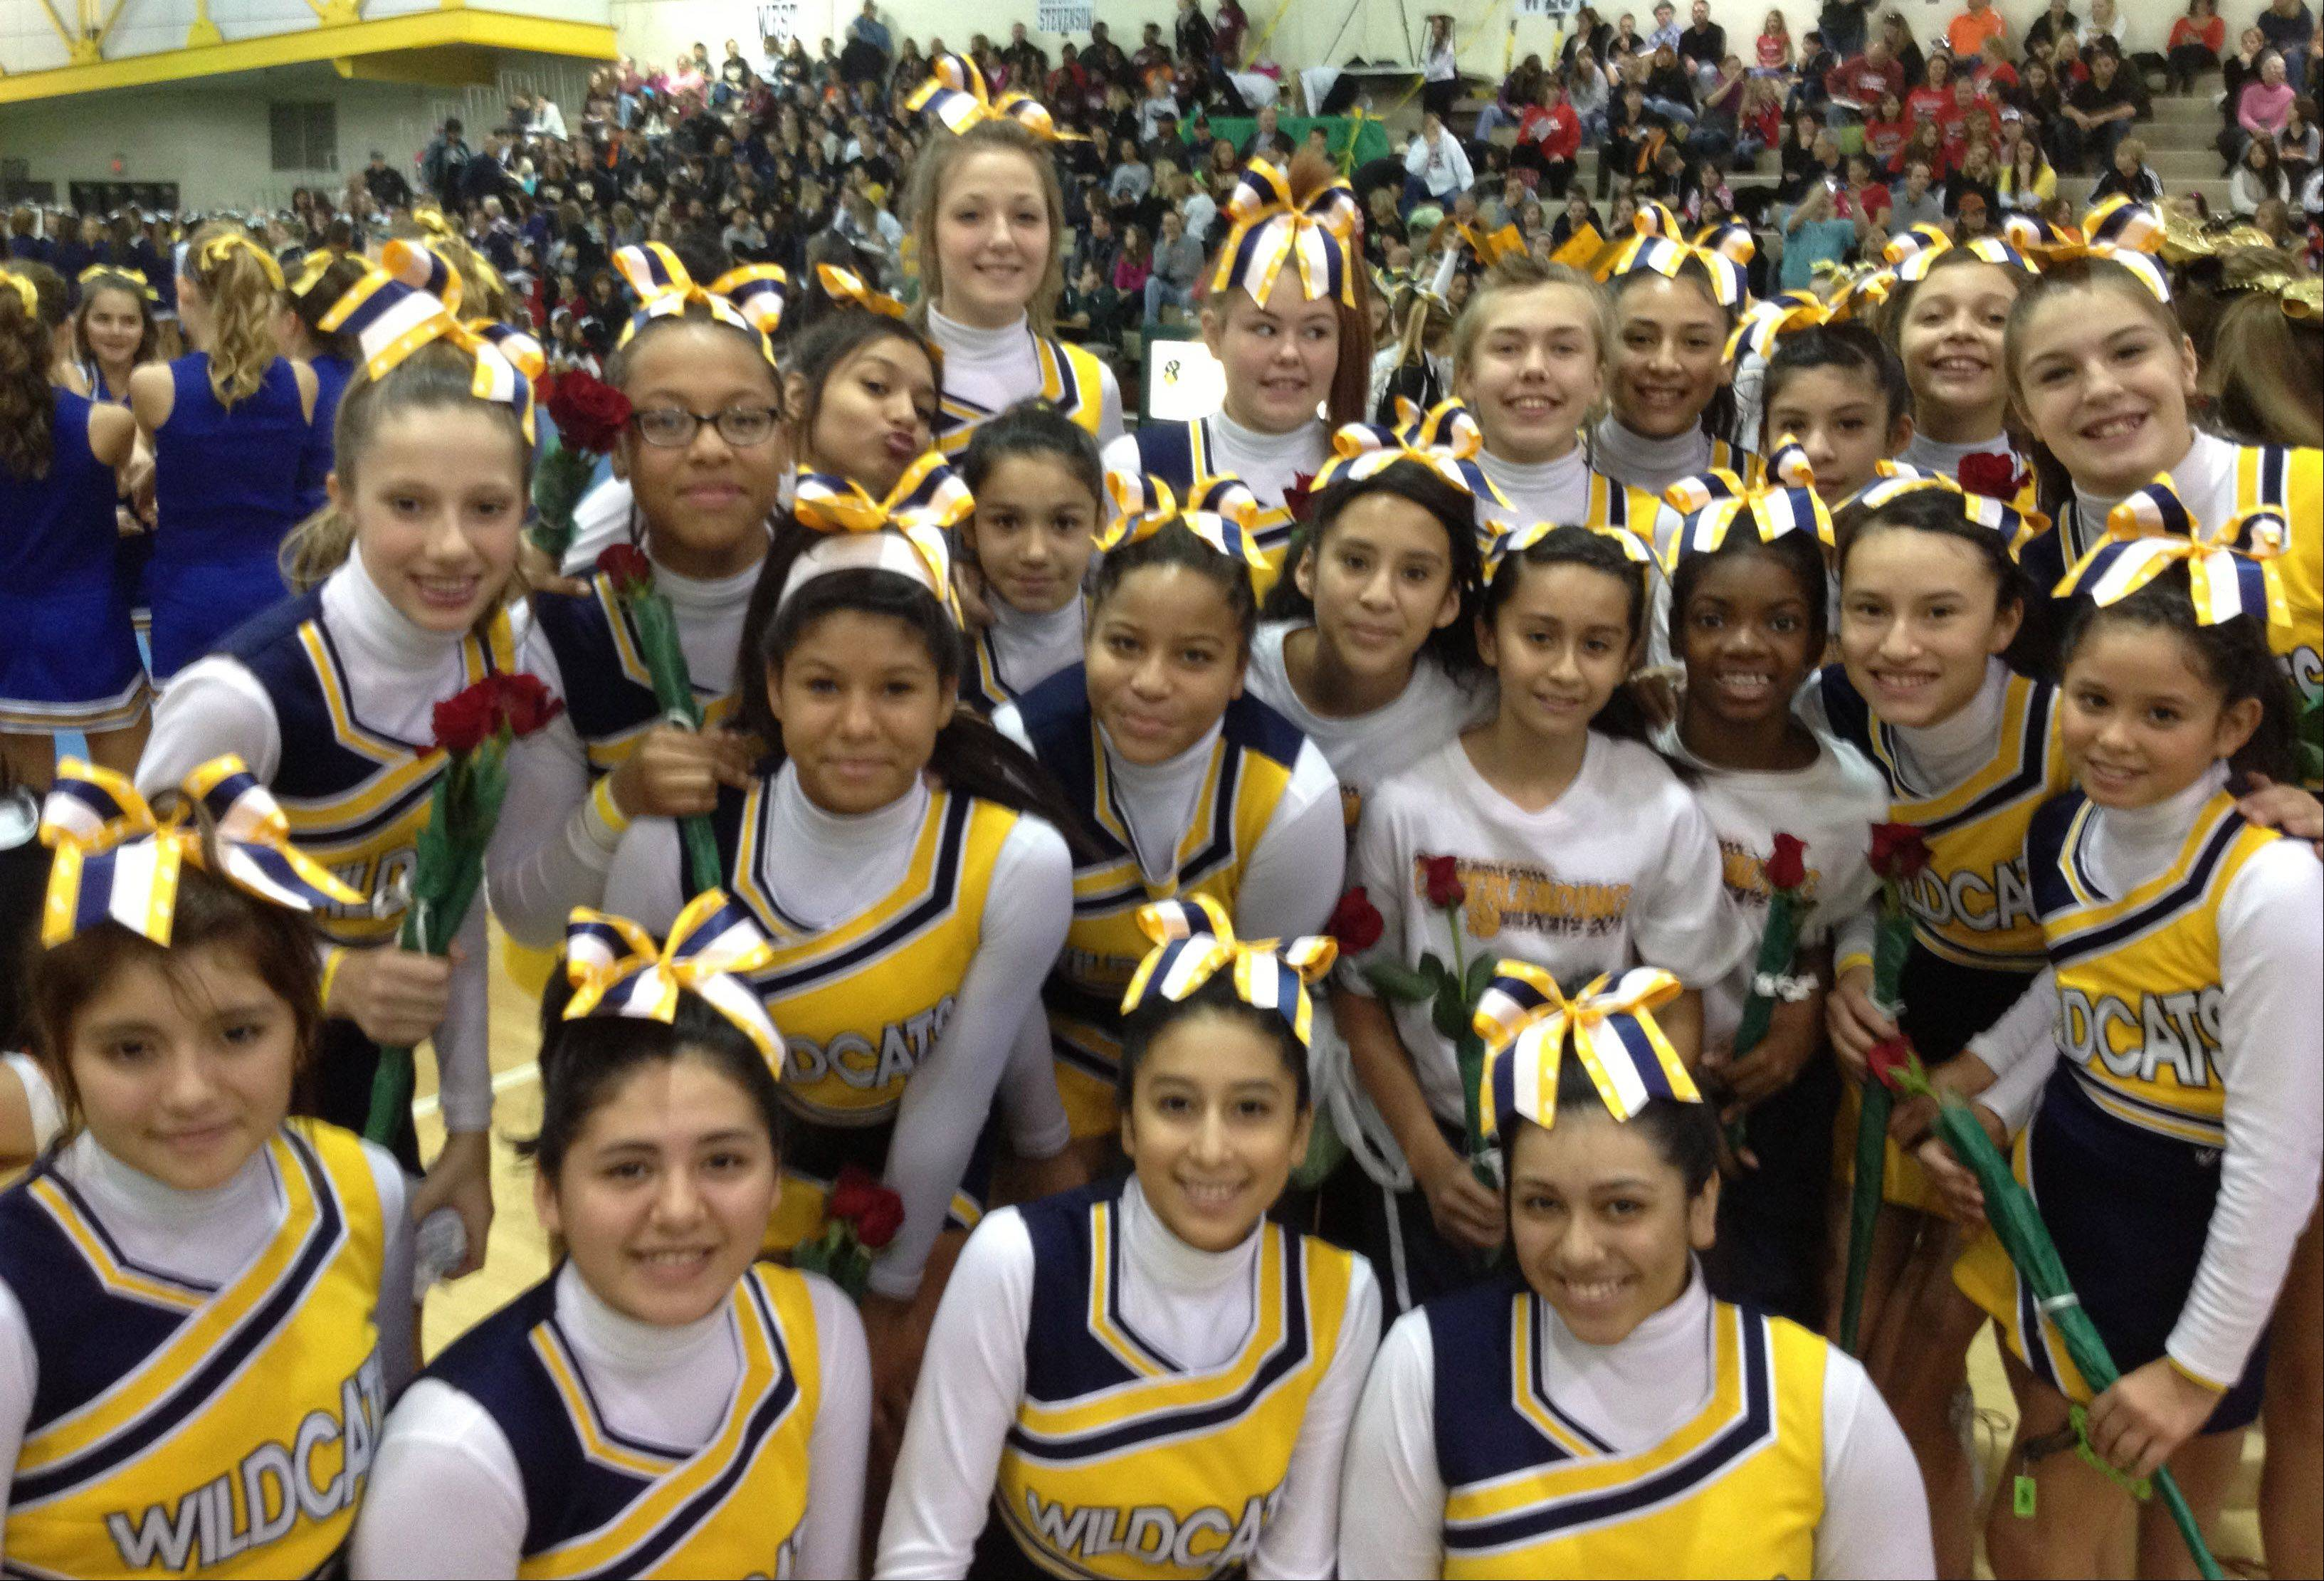 Round Lake Middle School took first place for the second year in a row in the Large Cheer Division at the Stevenson High School Cheer Invitation.